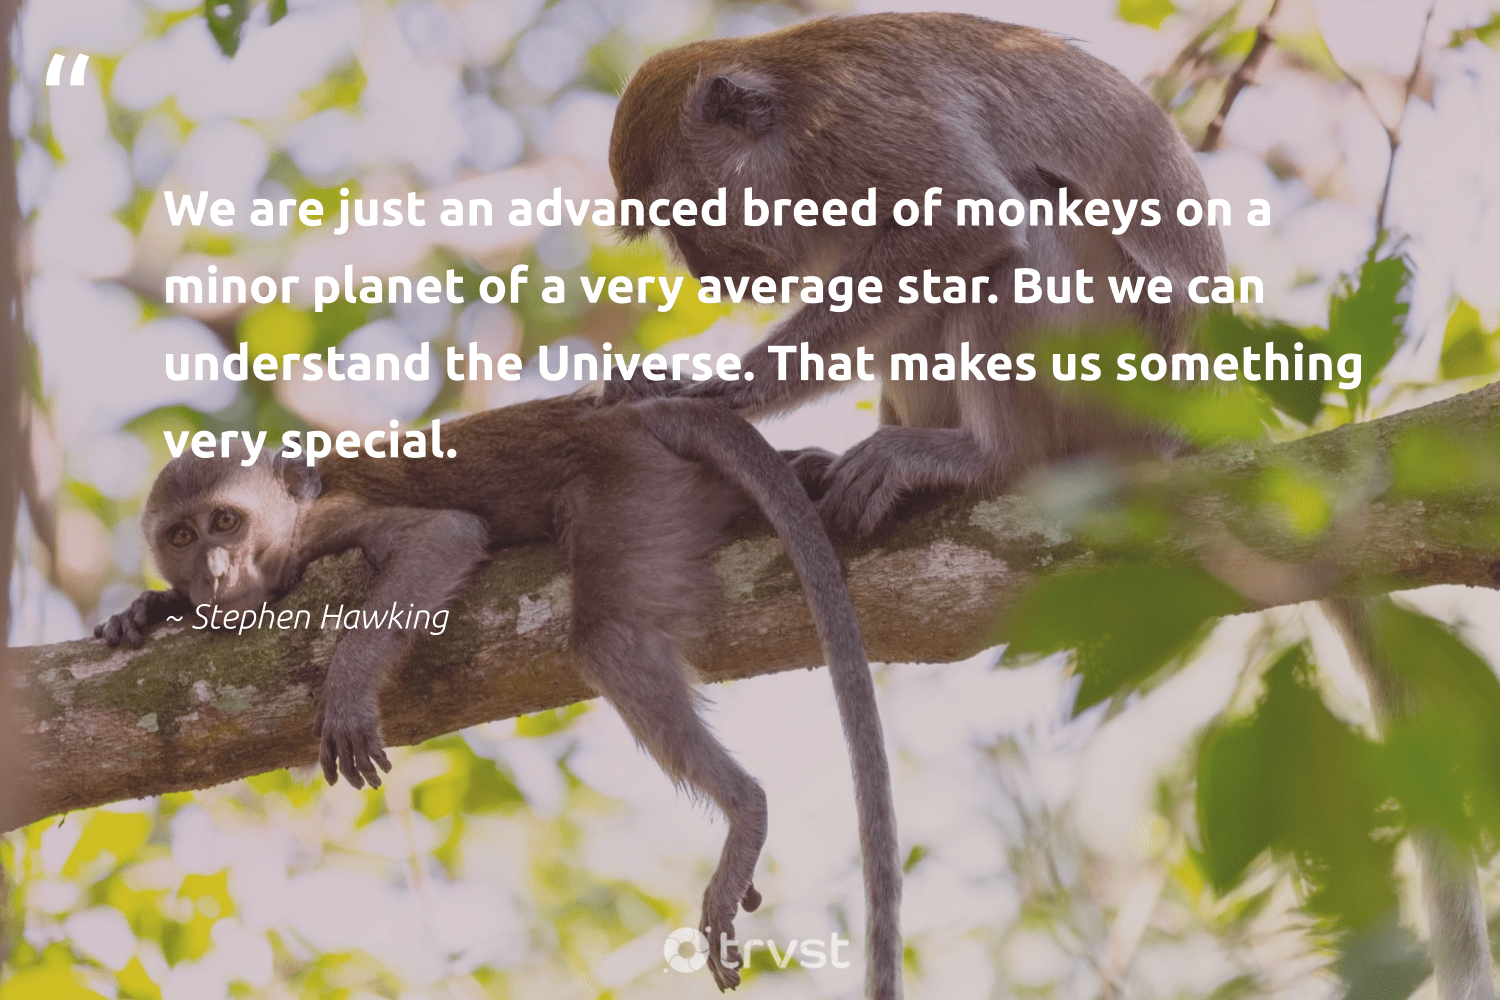 """We are just an advanced breed of monkeys on a minor planet of a very average star. But we can understand the Universe. That makes us something very special.""  - Stephen Hawking #trvst #quotes #planet #monkeys #earth #monkey #sustainability #beinspired #environment #monkeylife #wildlifeplanet #thinkgreen"